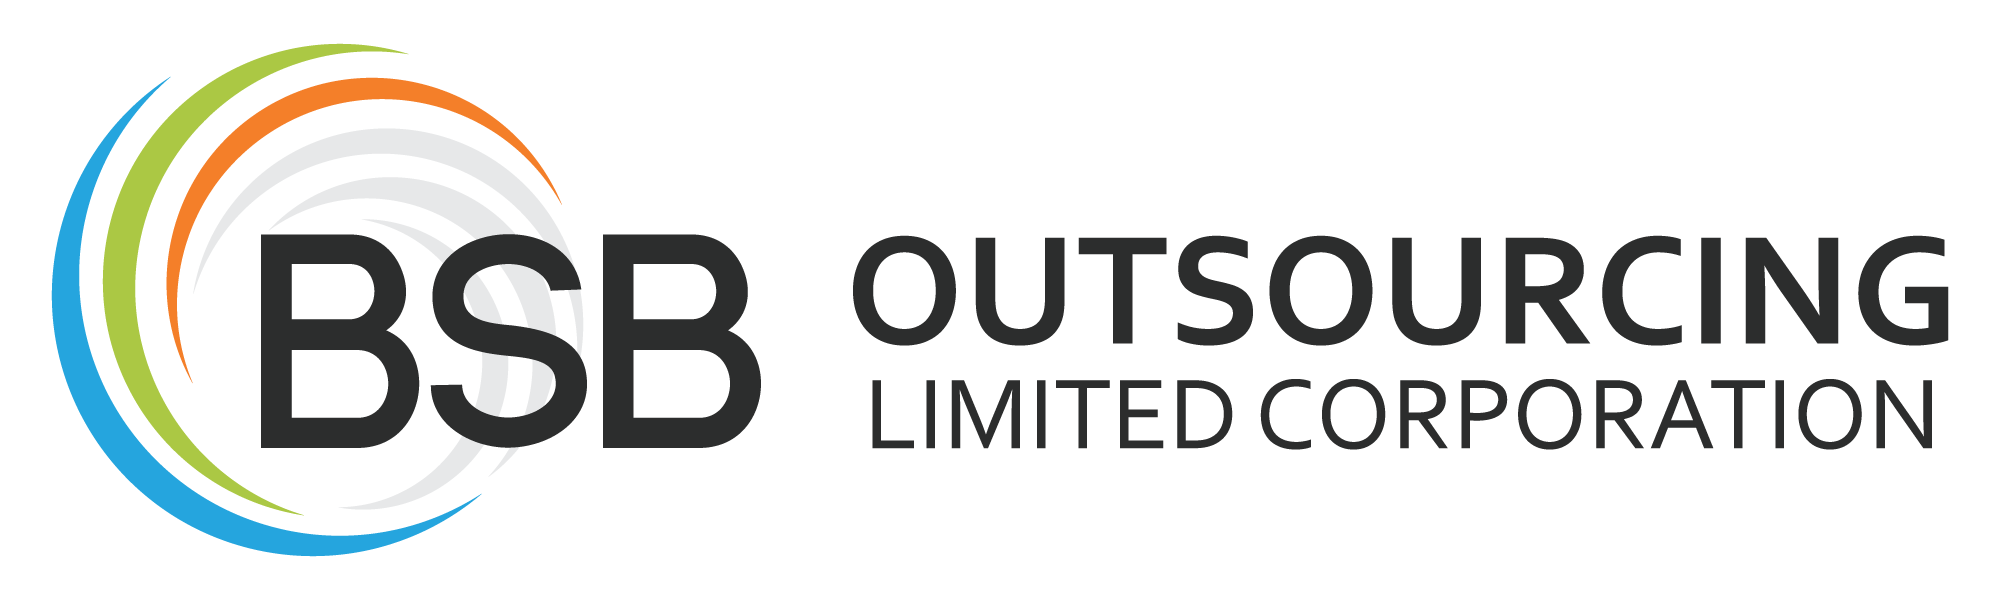 BSB Outsourcing Limited Corp. from Pampanga, Central Luzon is ... for Full Stack Logo  67qdu